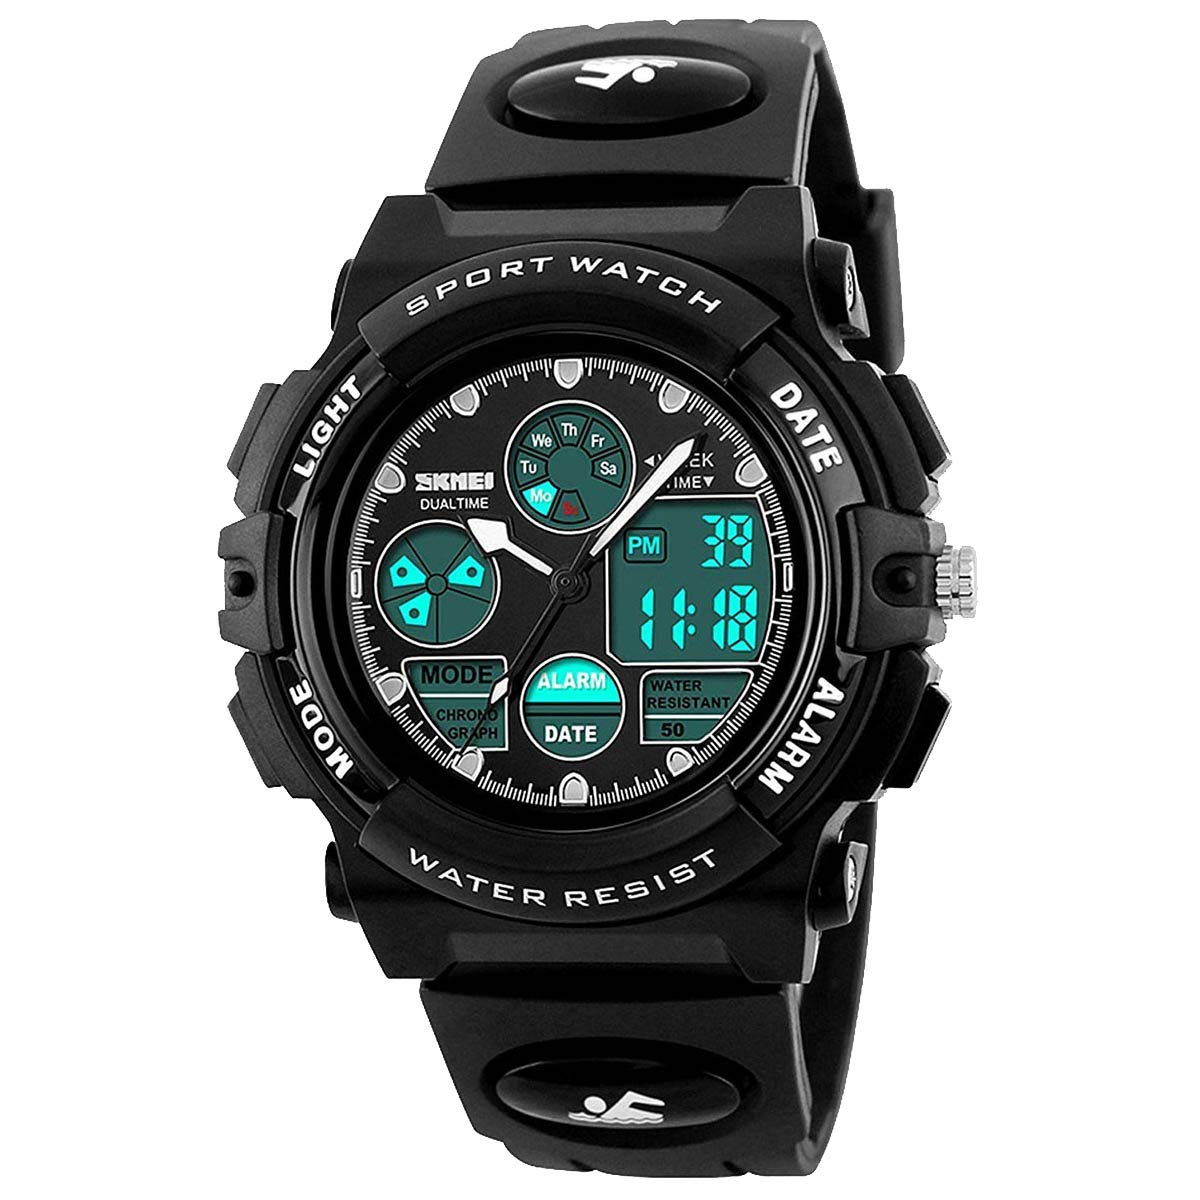 Kids Watches for Boys Girls Digital Waterproof Sports with Alarm Stopwatch LED Electronic Quartz Wrist Watch Student Youth Teens children1163 by AFARER